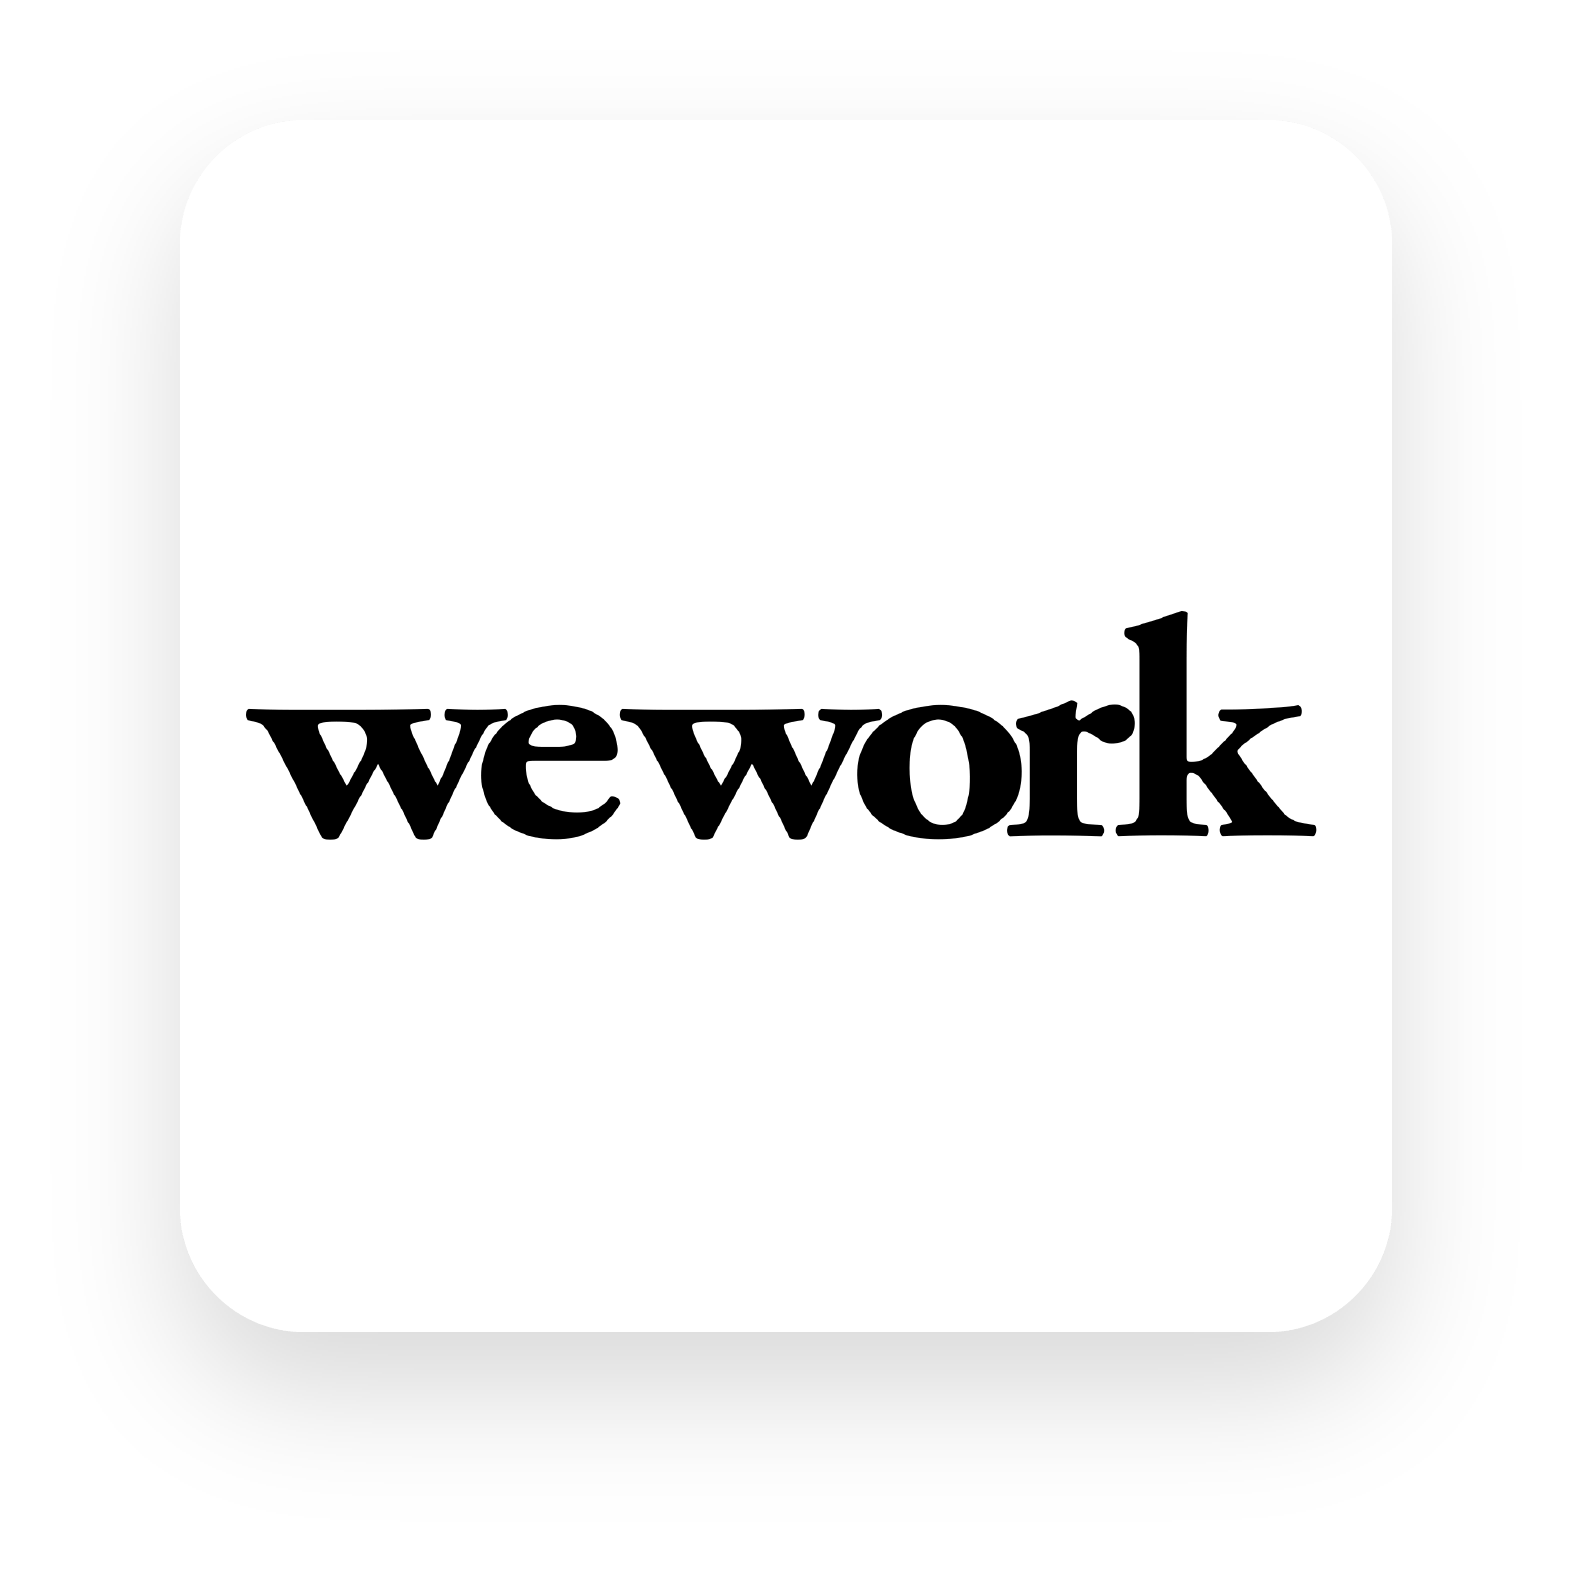 wework-lg@2x-8.png